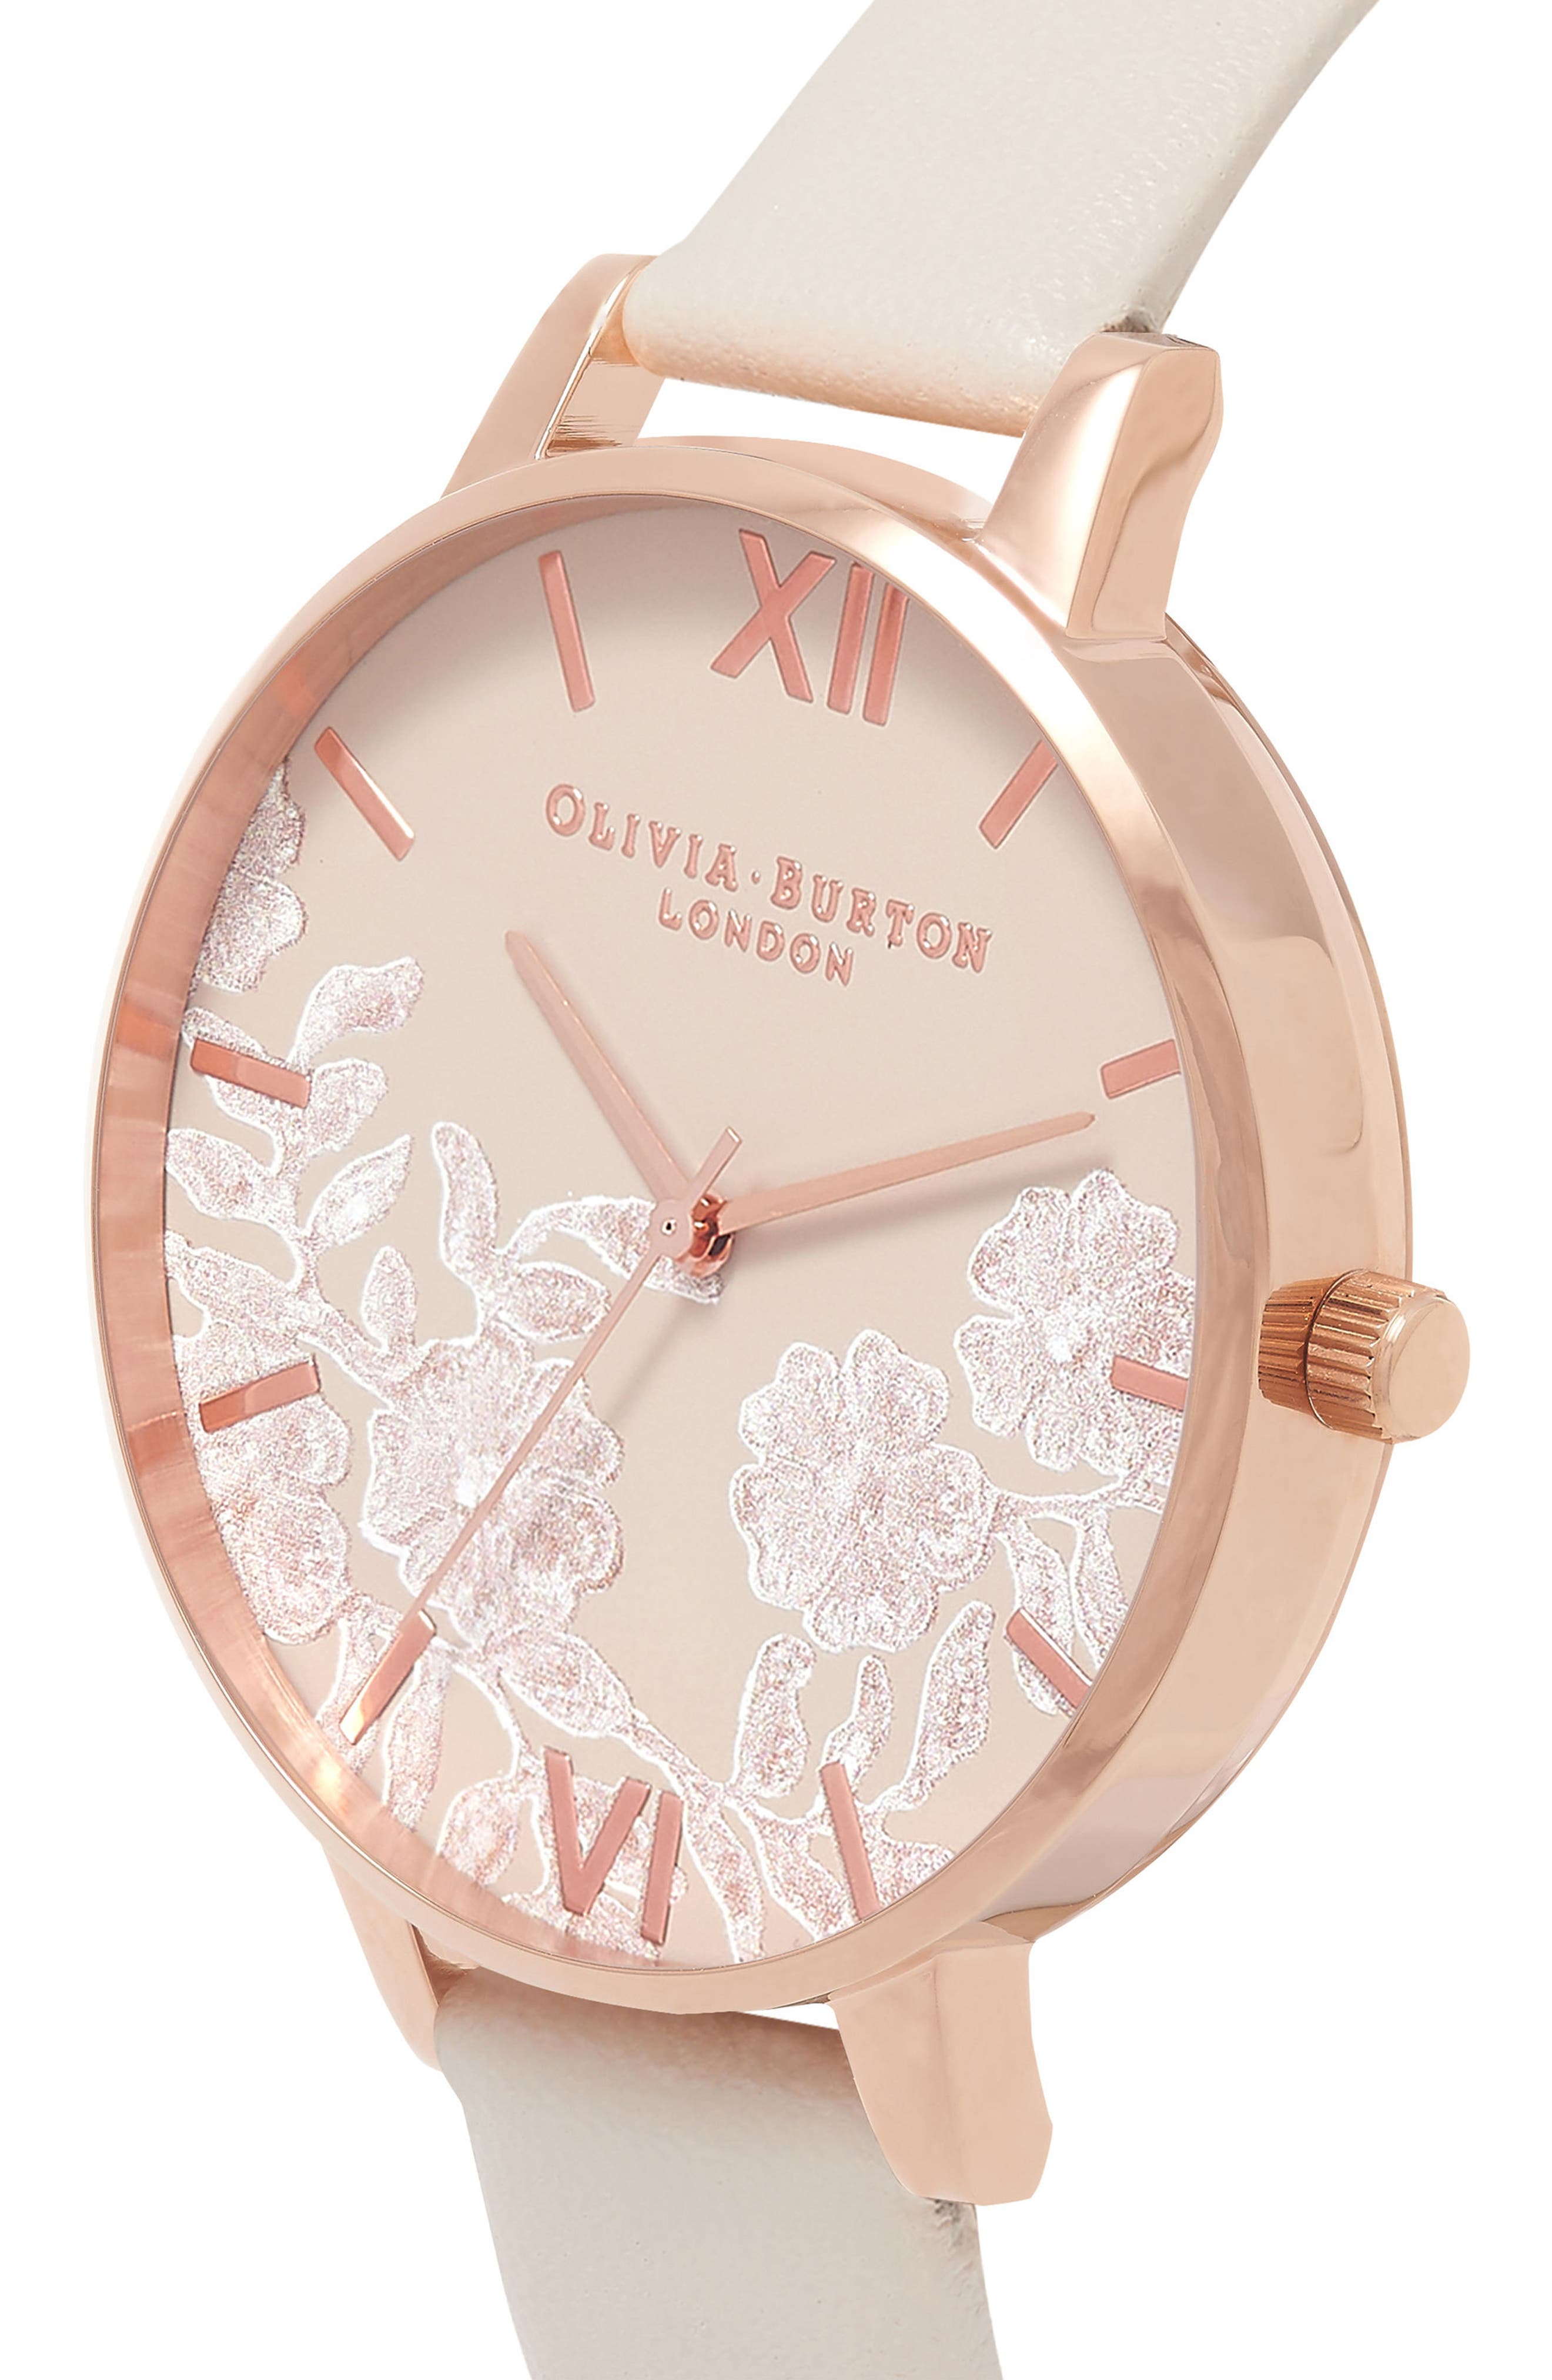 Lace Detail Faux Leather Strap Watch, 38mm,                             Alternate thumbnail 4, color,                             Nude/ Grey Floral/ Rose Gold